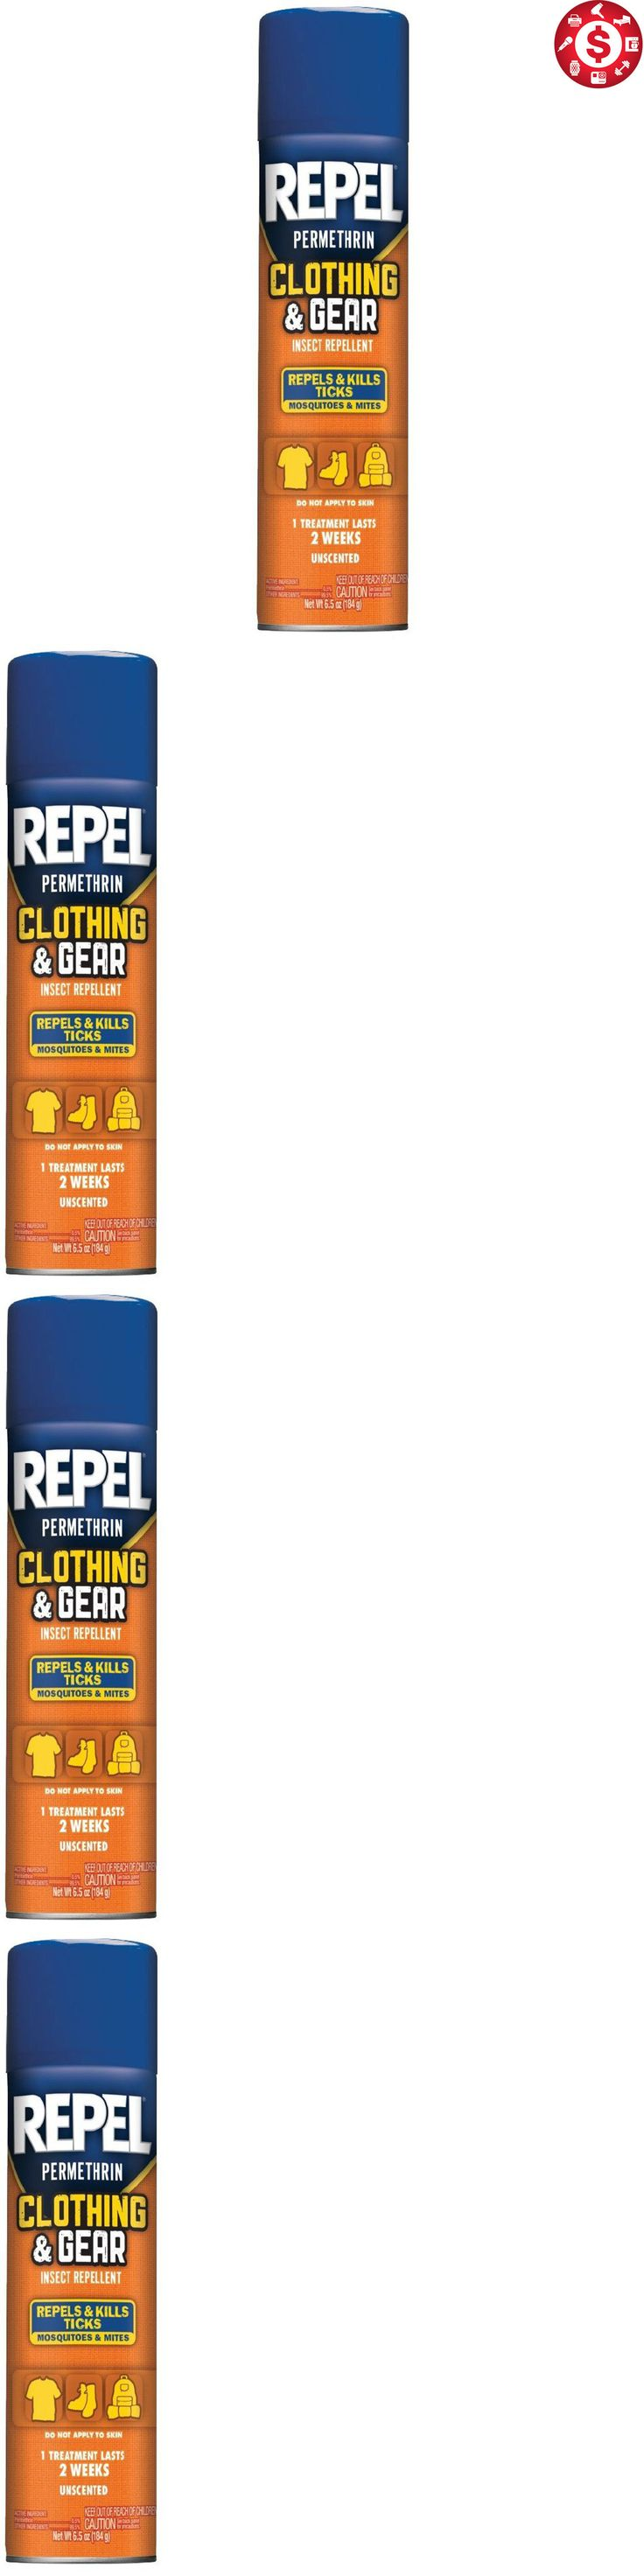 Insect Nets and Repellents 65965: 6.5 Ounce Repel Permethrin Clothing And Gear Spray Insect Repellent Aerosol New -> BUY IT NOW ONLY: $37.87 on eBay!